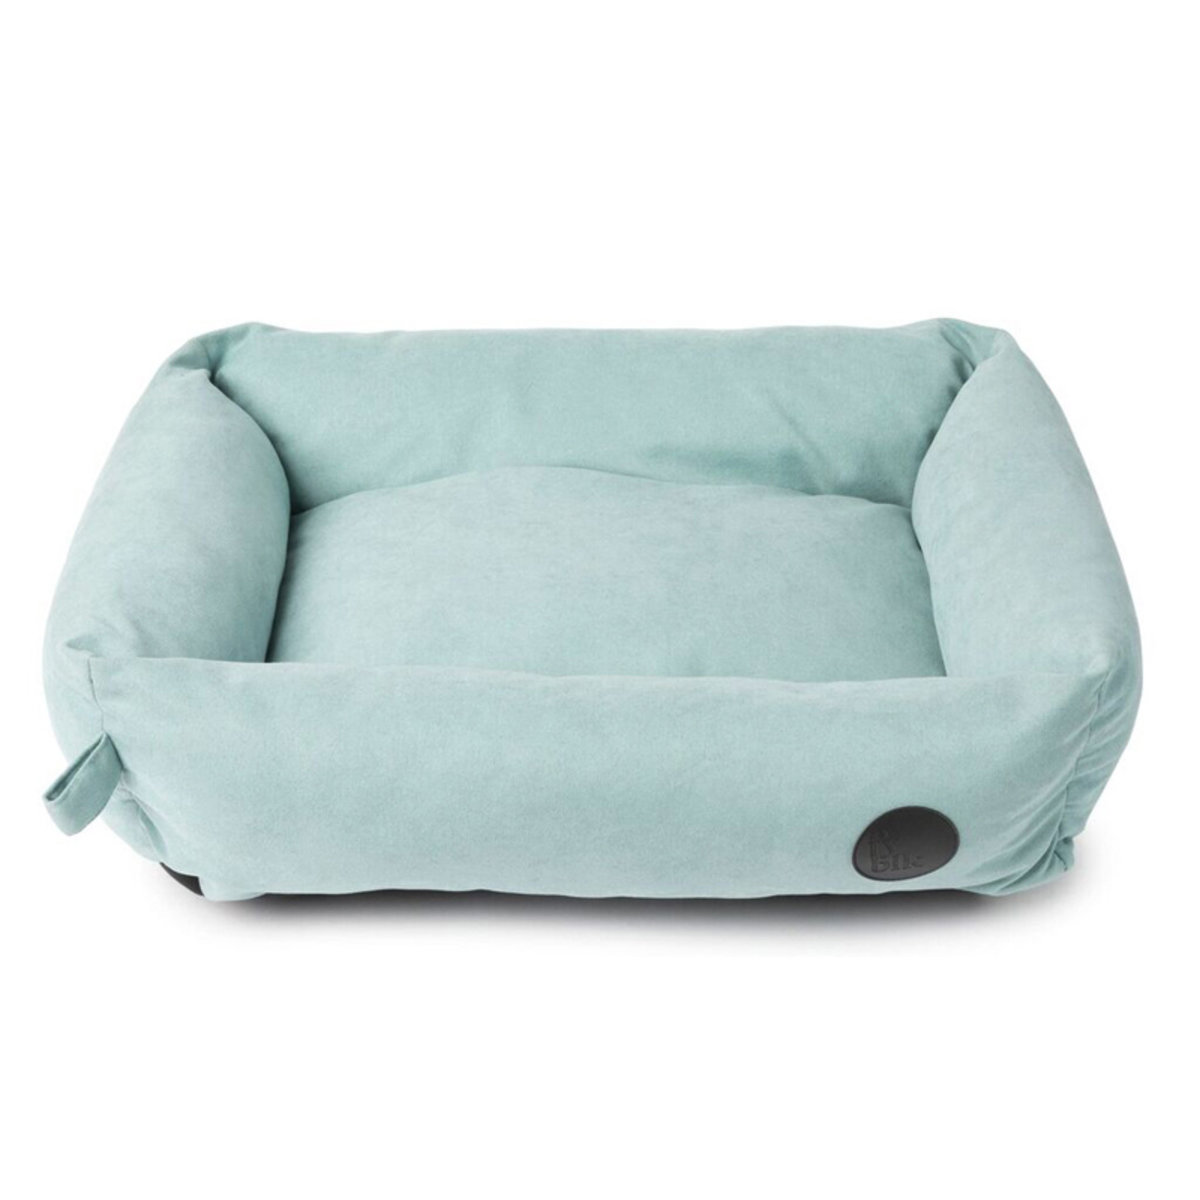 The Lounge Bed - Powder Blue Small K26